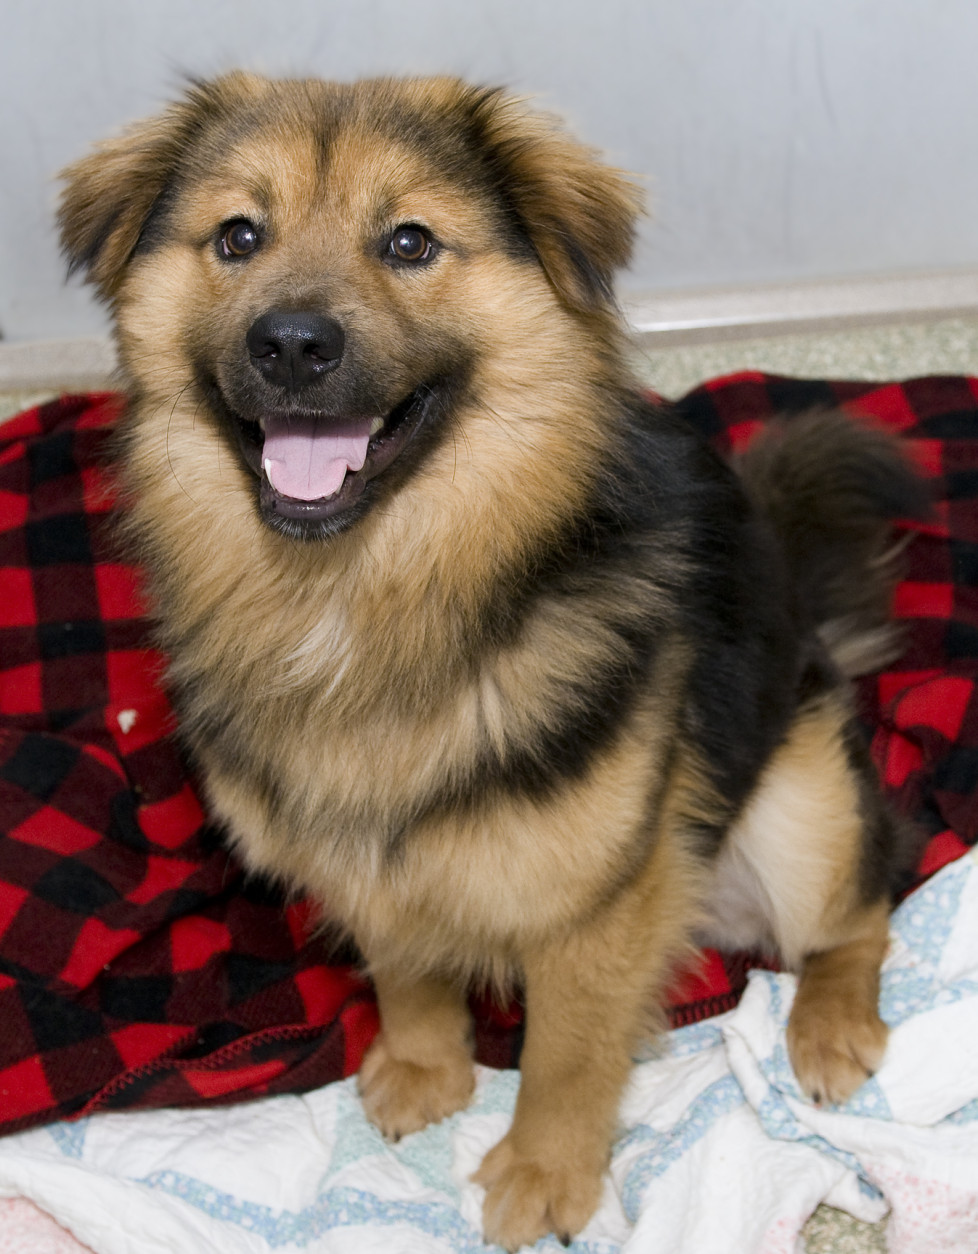 At first glance, Walnut looks like an oversized stuffed animal; perhaps a Teddy bear come to life. In reality, this handsome boy is a 1.5-year-old Chow mix who can't wait for a forever home of his own! Walnut is pretty much the perfect dog: friendly with people and dogs, playful, and very affectionate. He'll happily share his toys with you and then dive into your lap for some snuggling. He's looking for a human companion who will love him, take him for walks…and brush his coat regularly. (Let's face it, that gorgeous coat, like a great hairstyle, doesn't just maintain itself.) If you're looking for a great dog to share your life, stop by the Washington Humane Society-Washington Animal Rescue League shelter at 71 Oglethorpe Street, NW, and meet Walnut today! (Courtesy WARL)